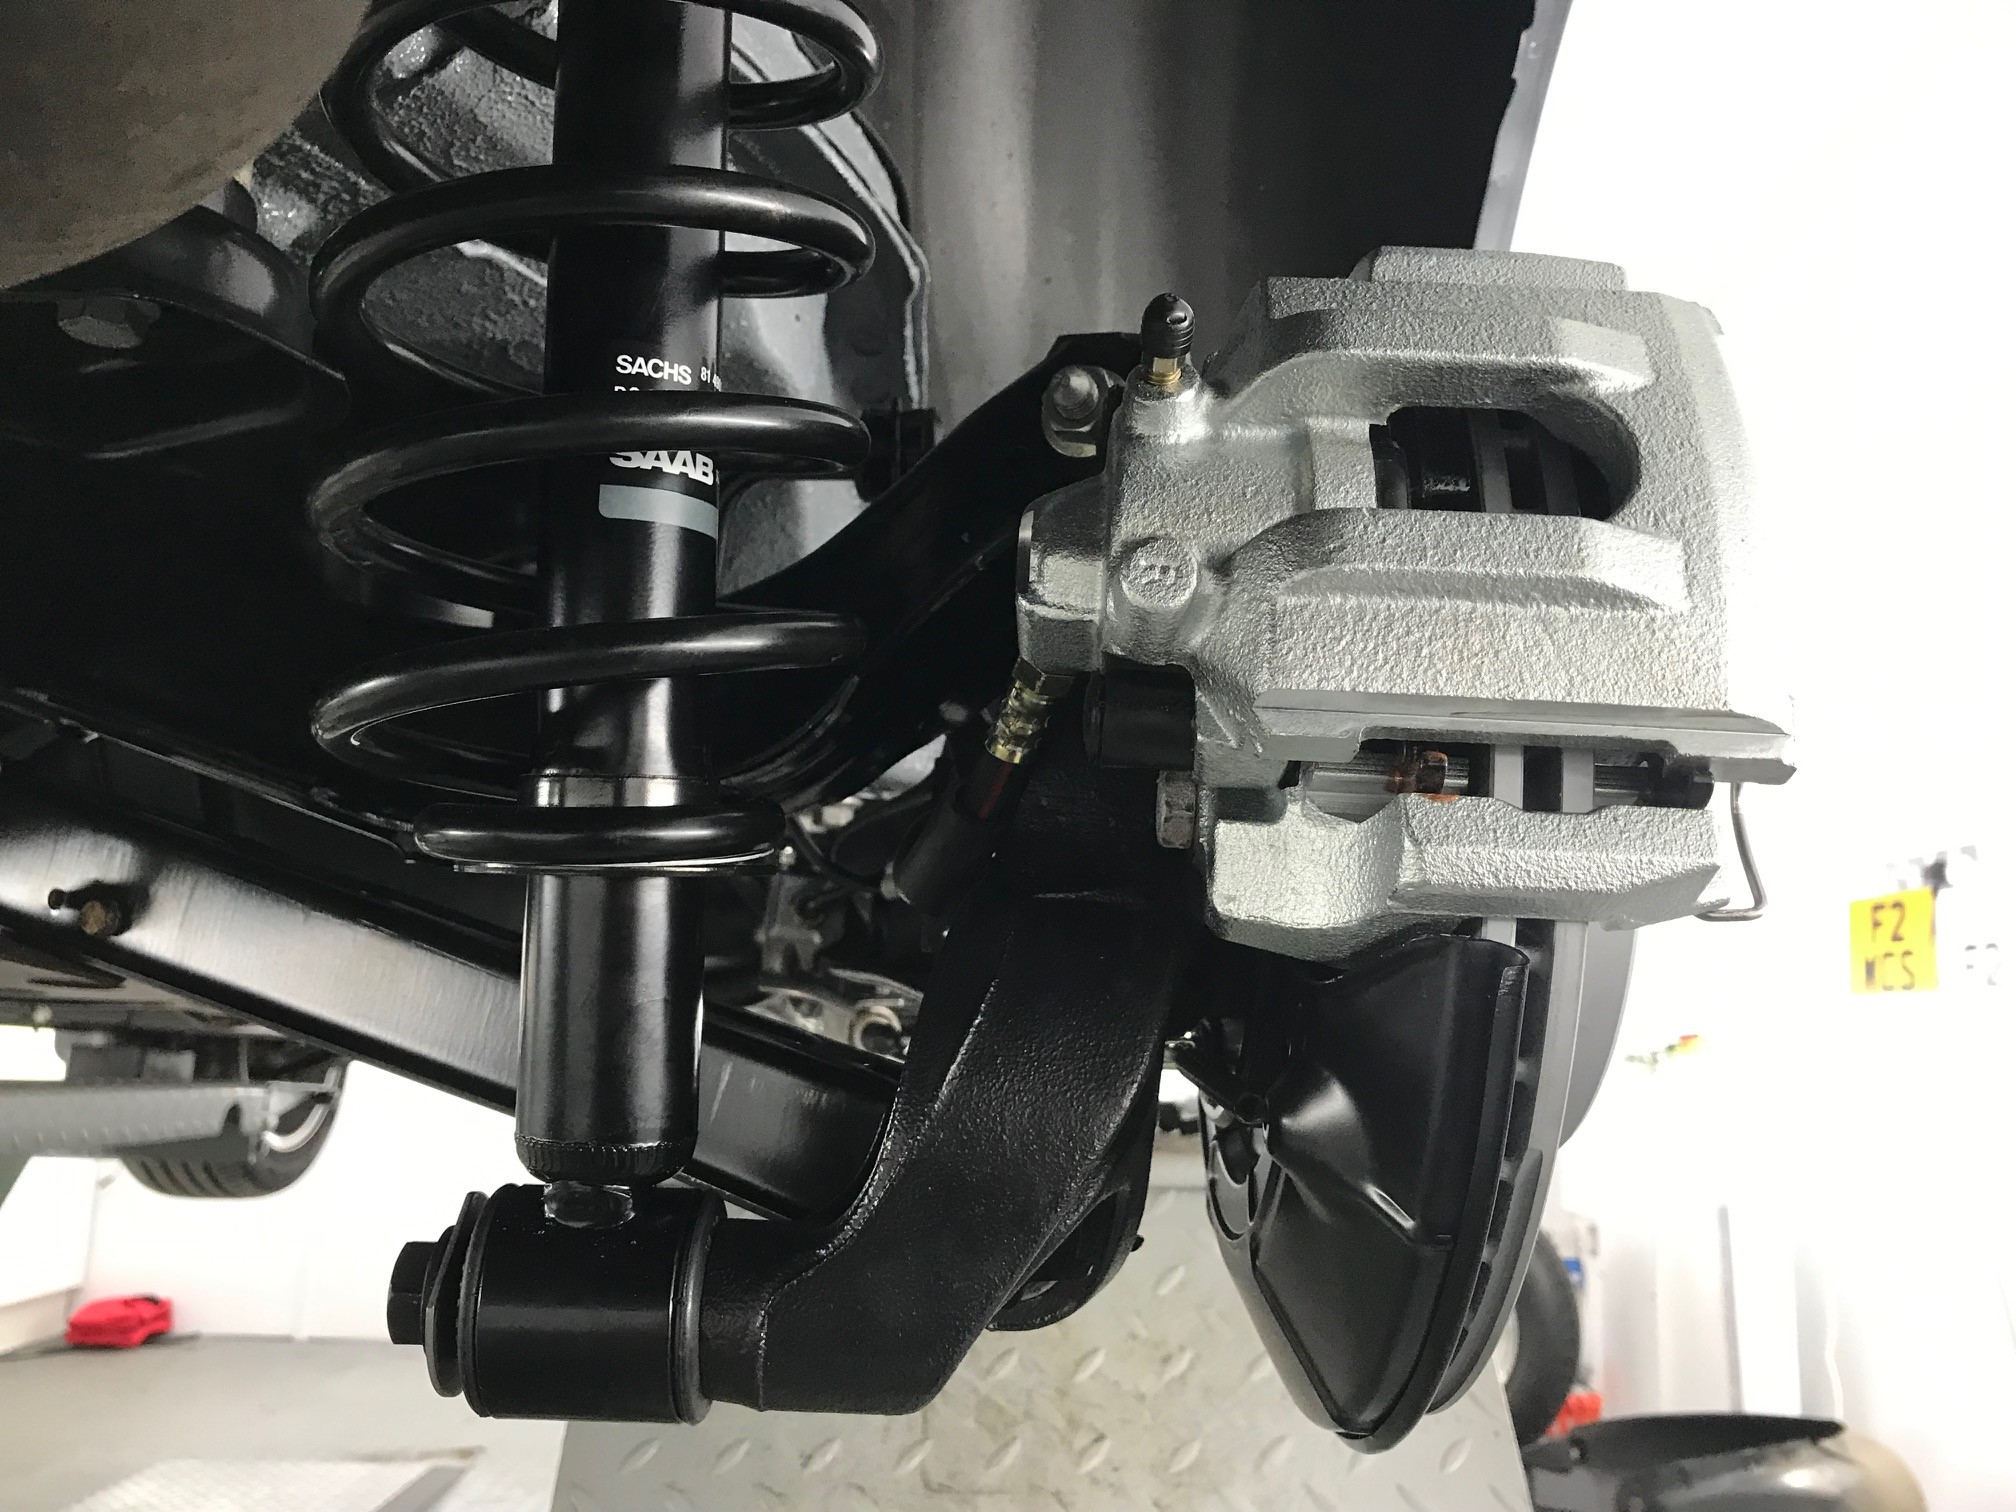 Saab 9-5 suspension and brakes